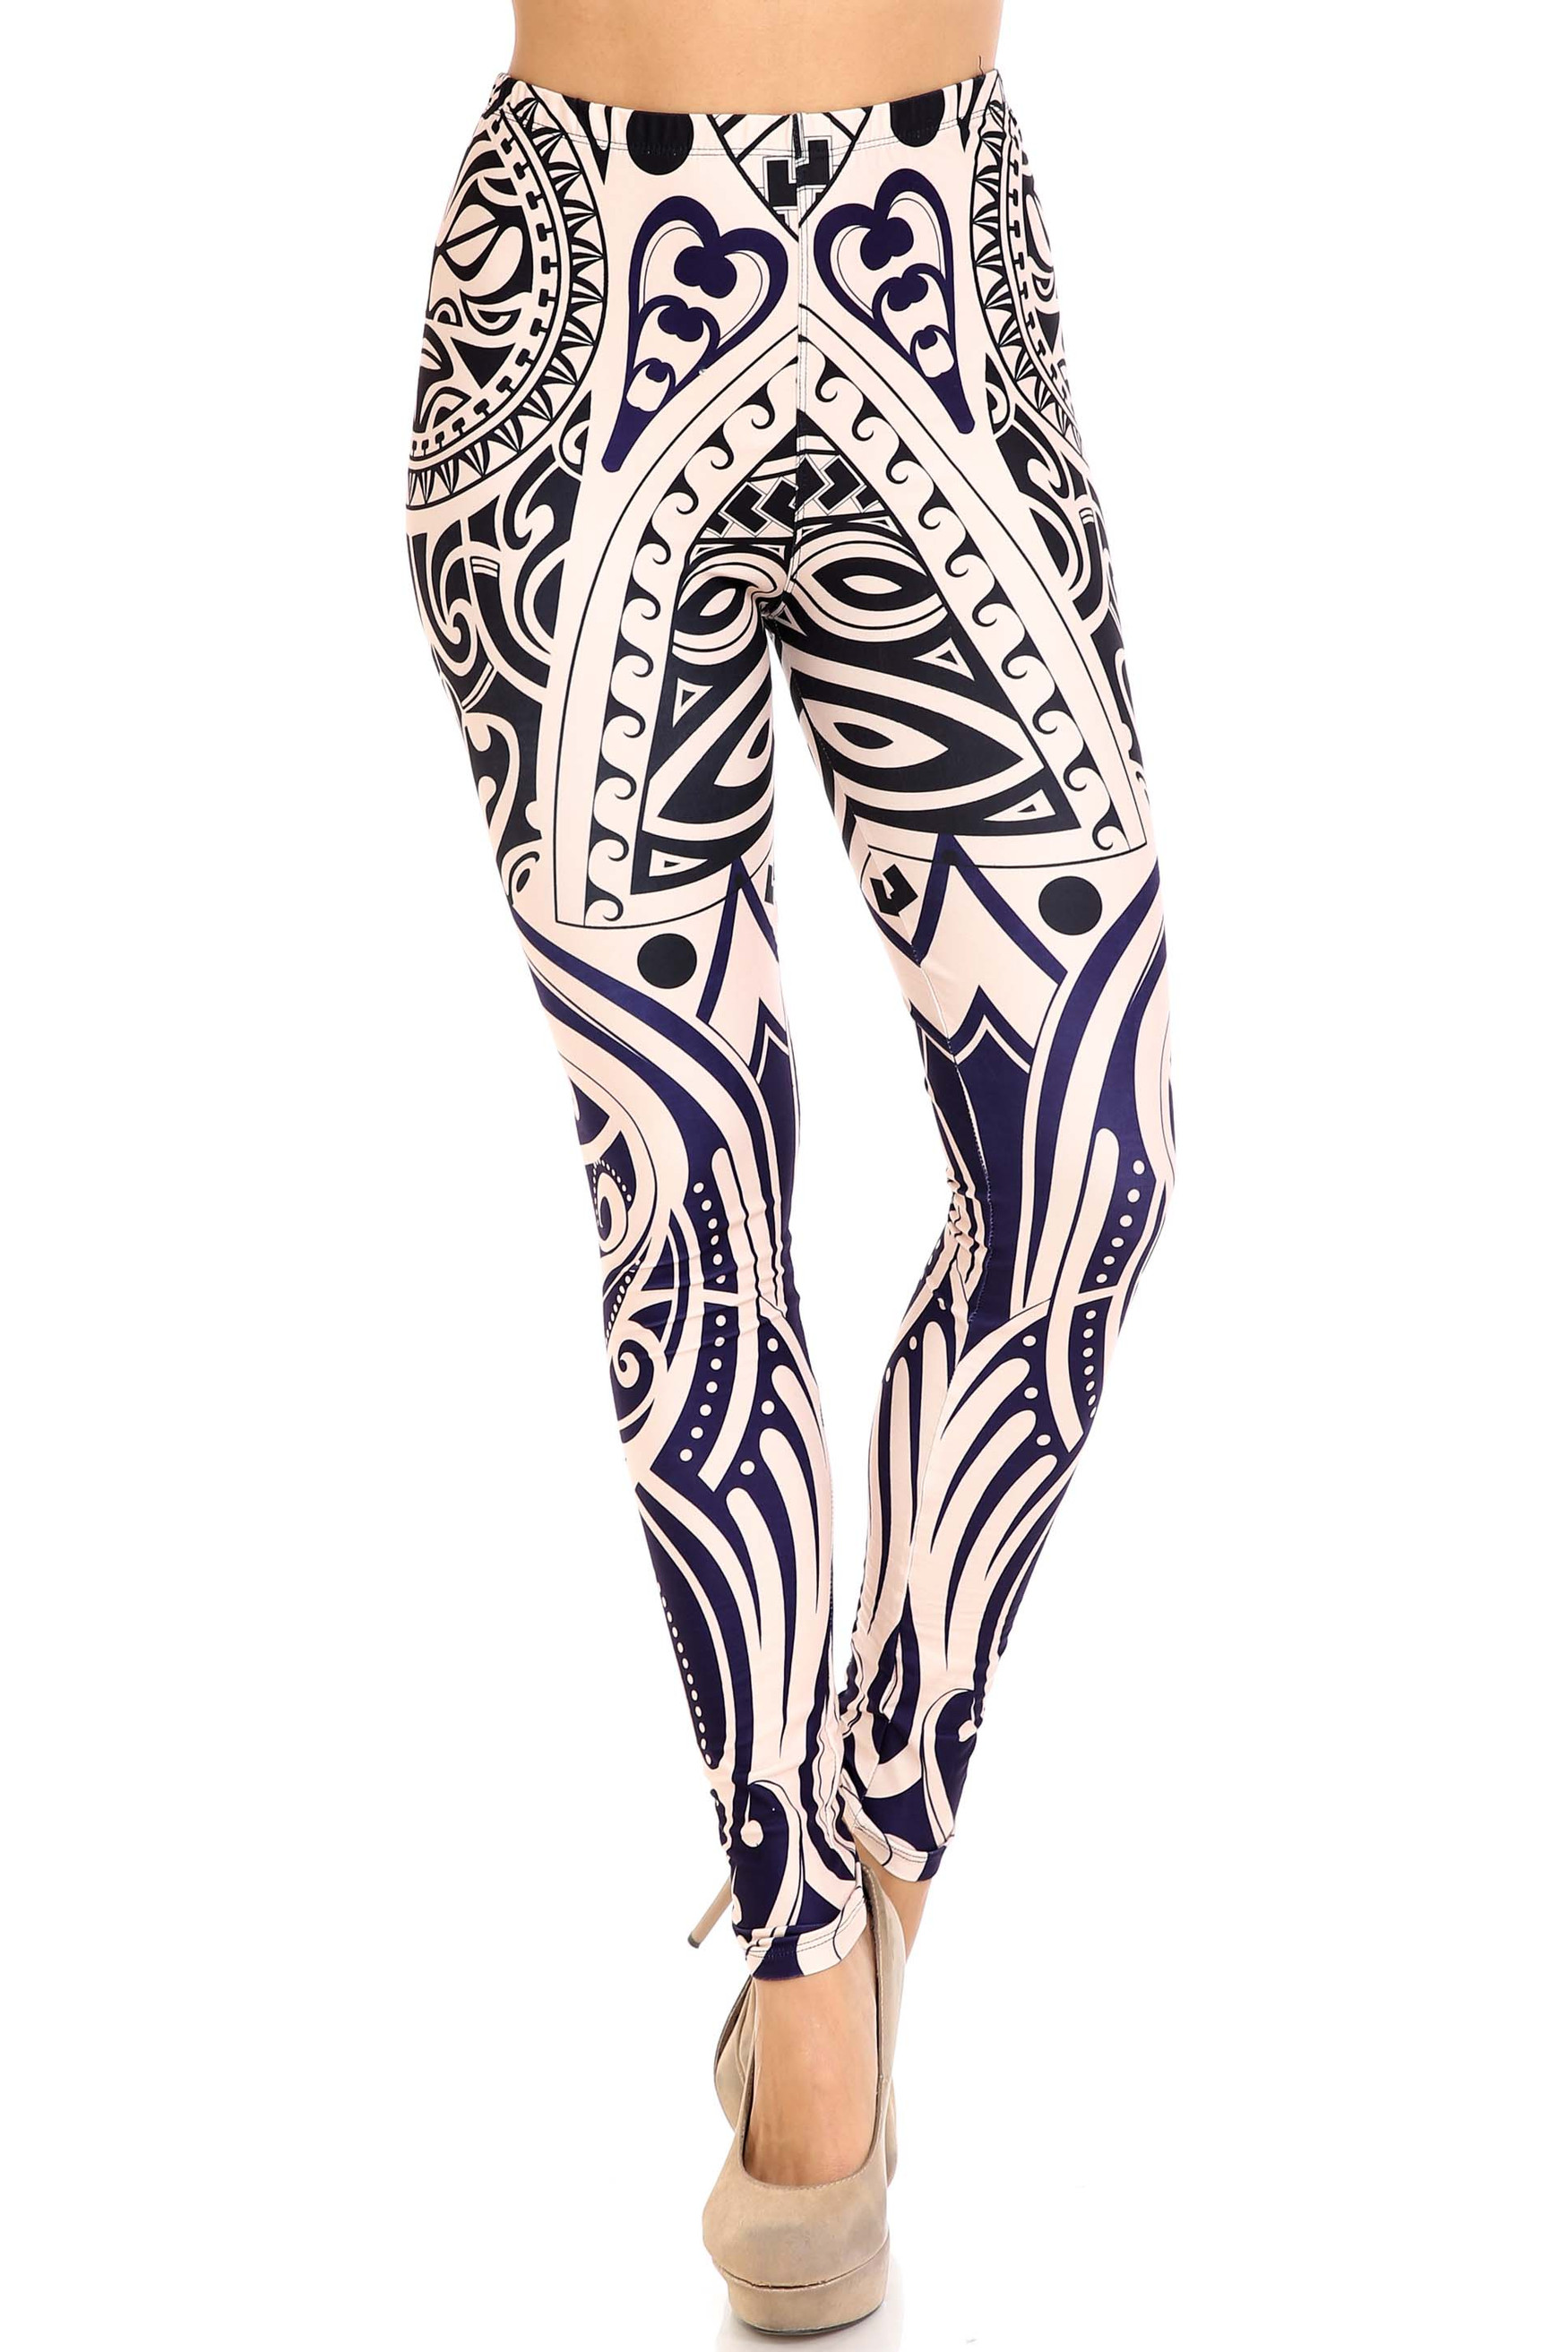 Front of mid rise Creamy Soft Valhalla Extra Plus Size Leggings - 3X-5X - USA Fashion™ with a full length hem and elastic waist.